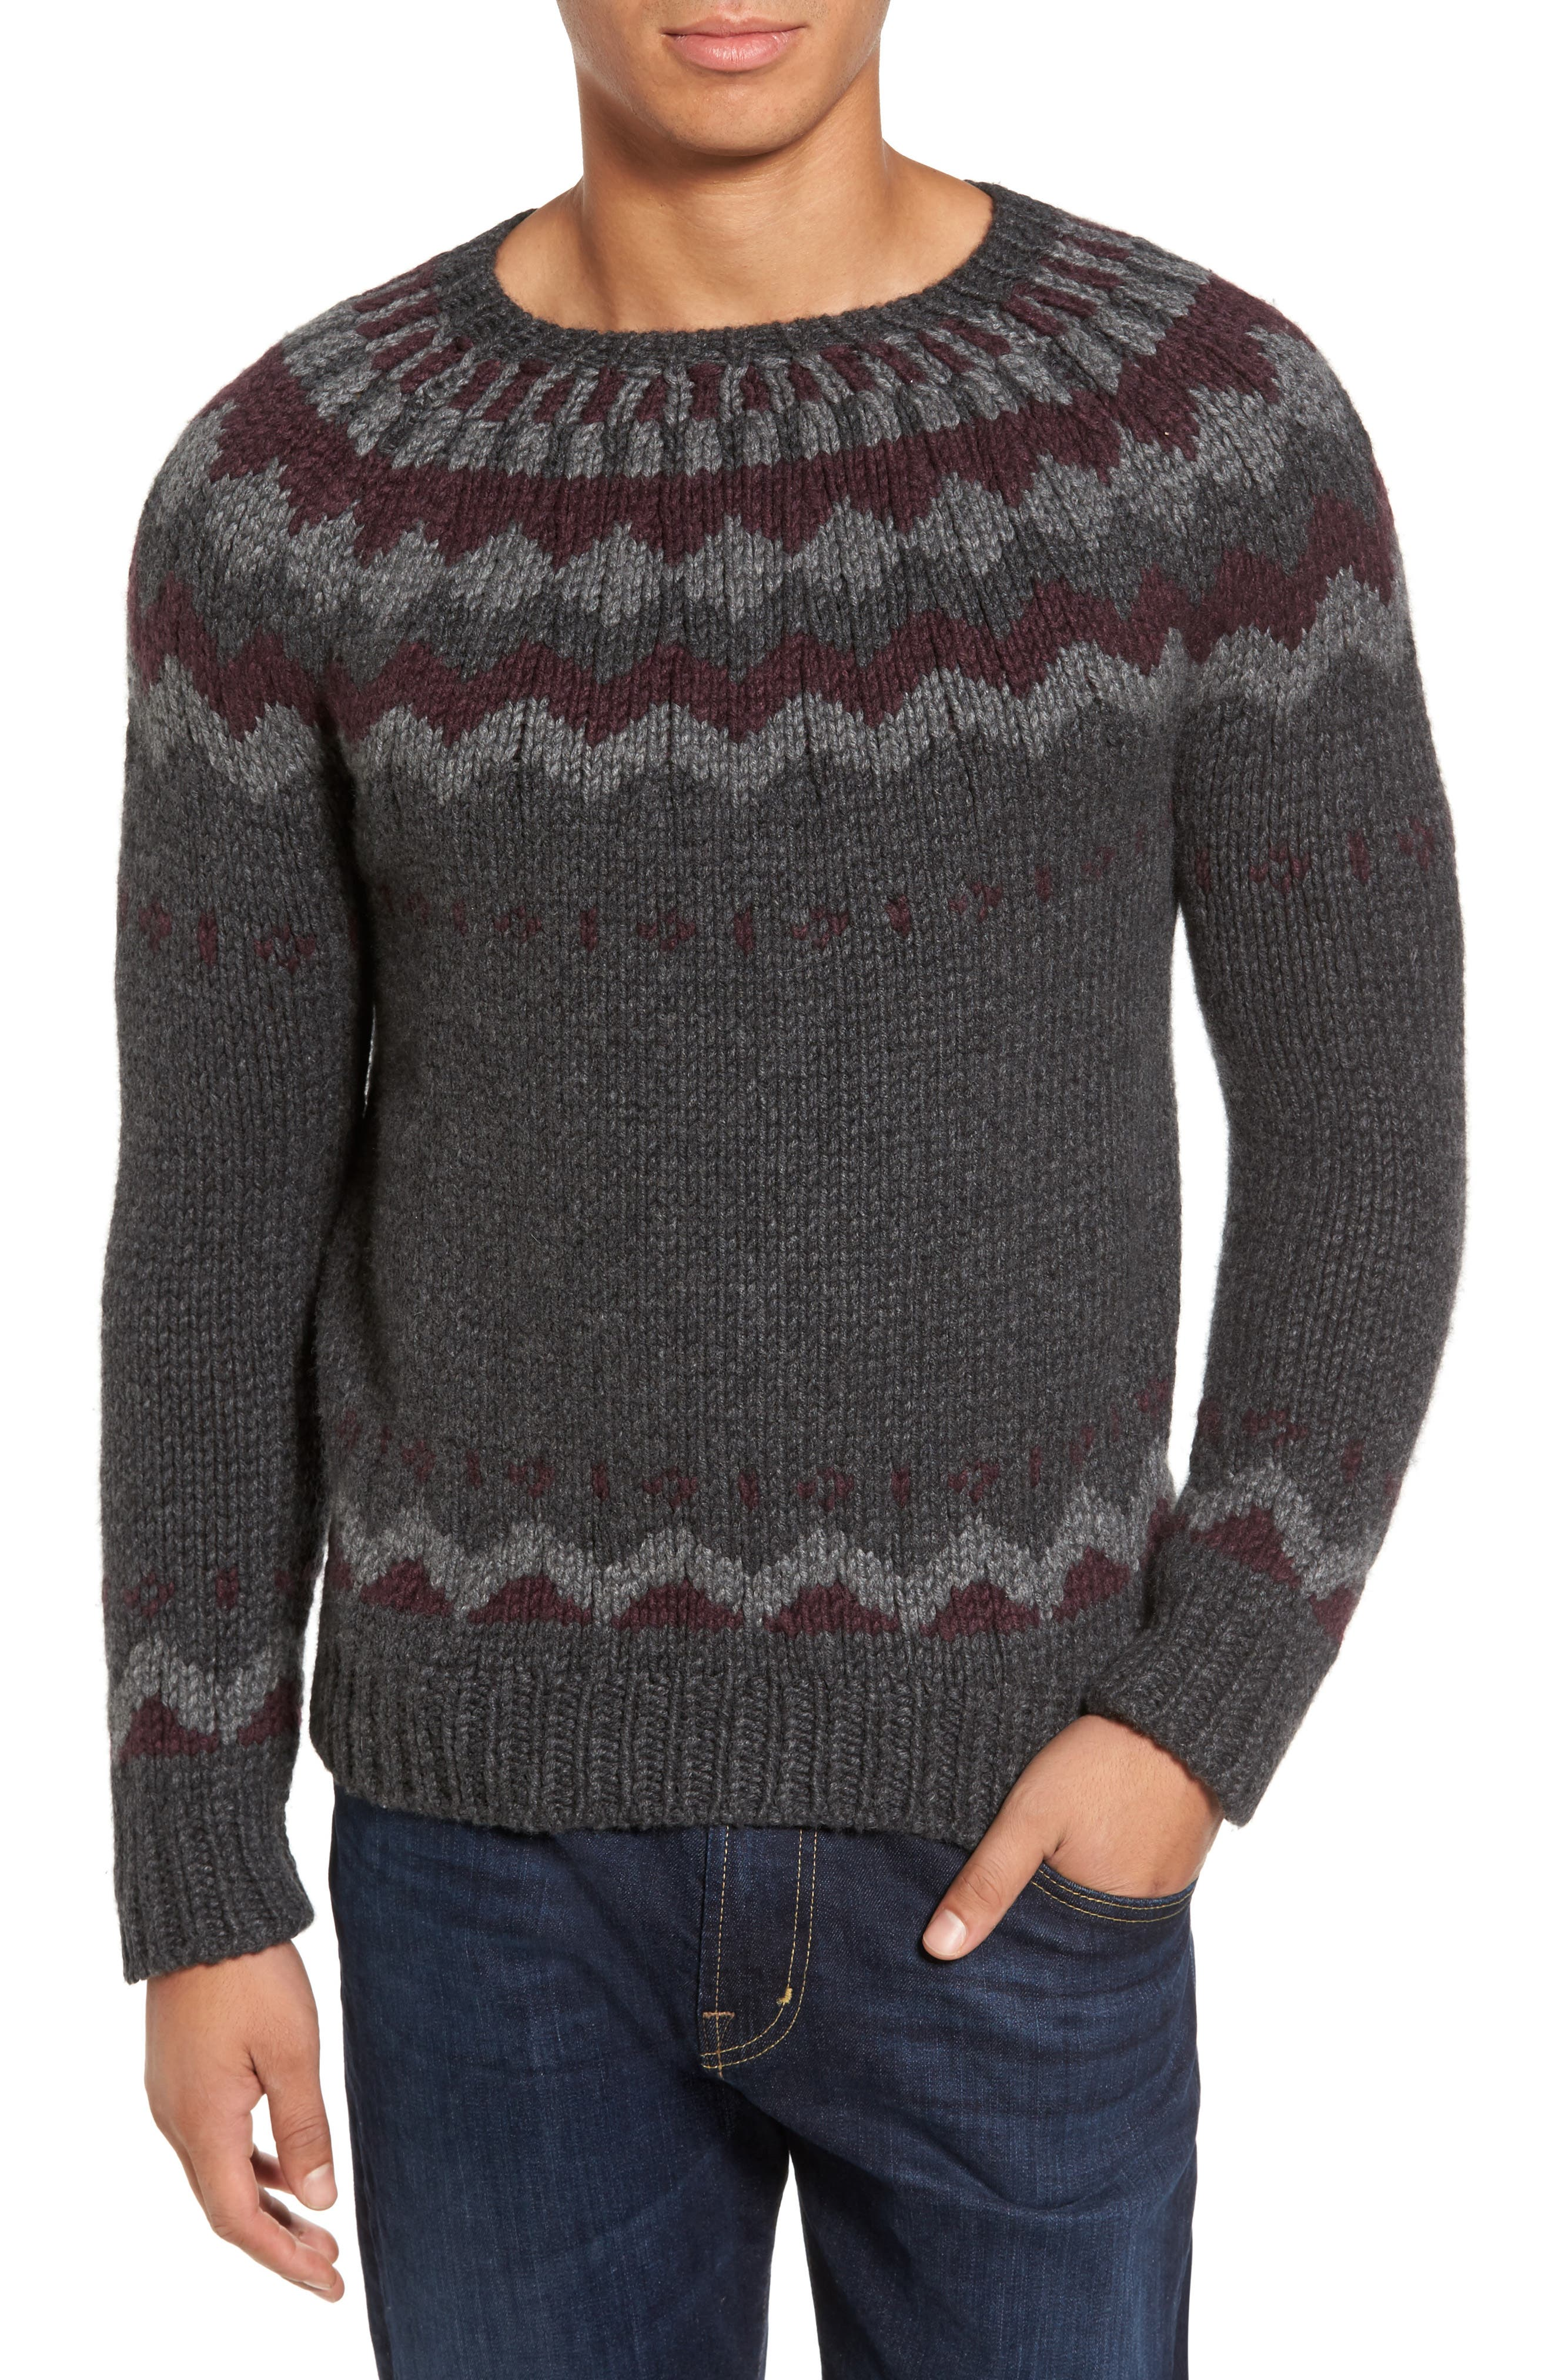 Intarsia Cashmere Sweater,                         Main,                         color, Grey / Burgundy/ Light Grey